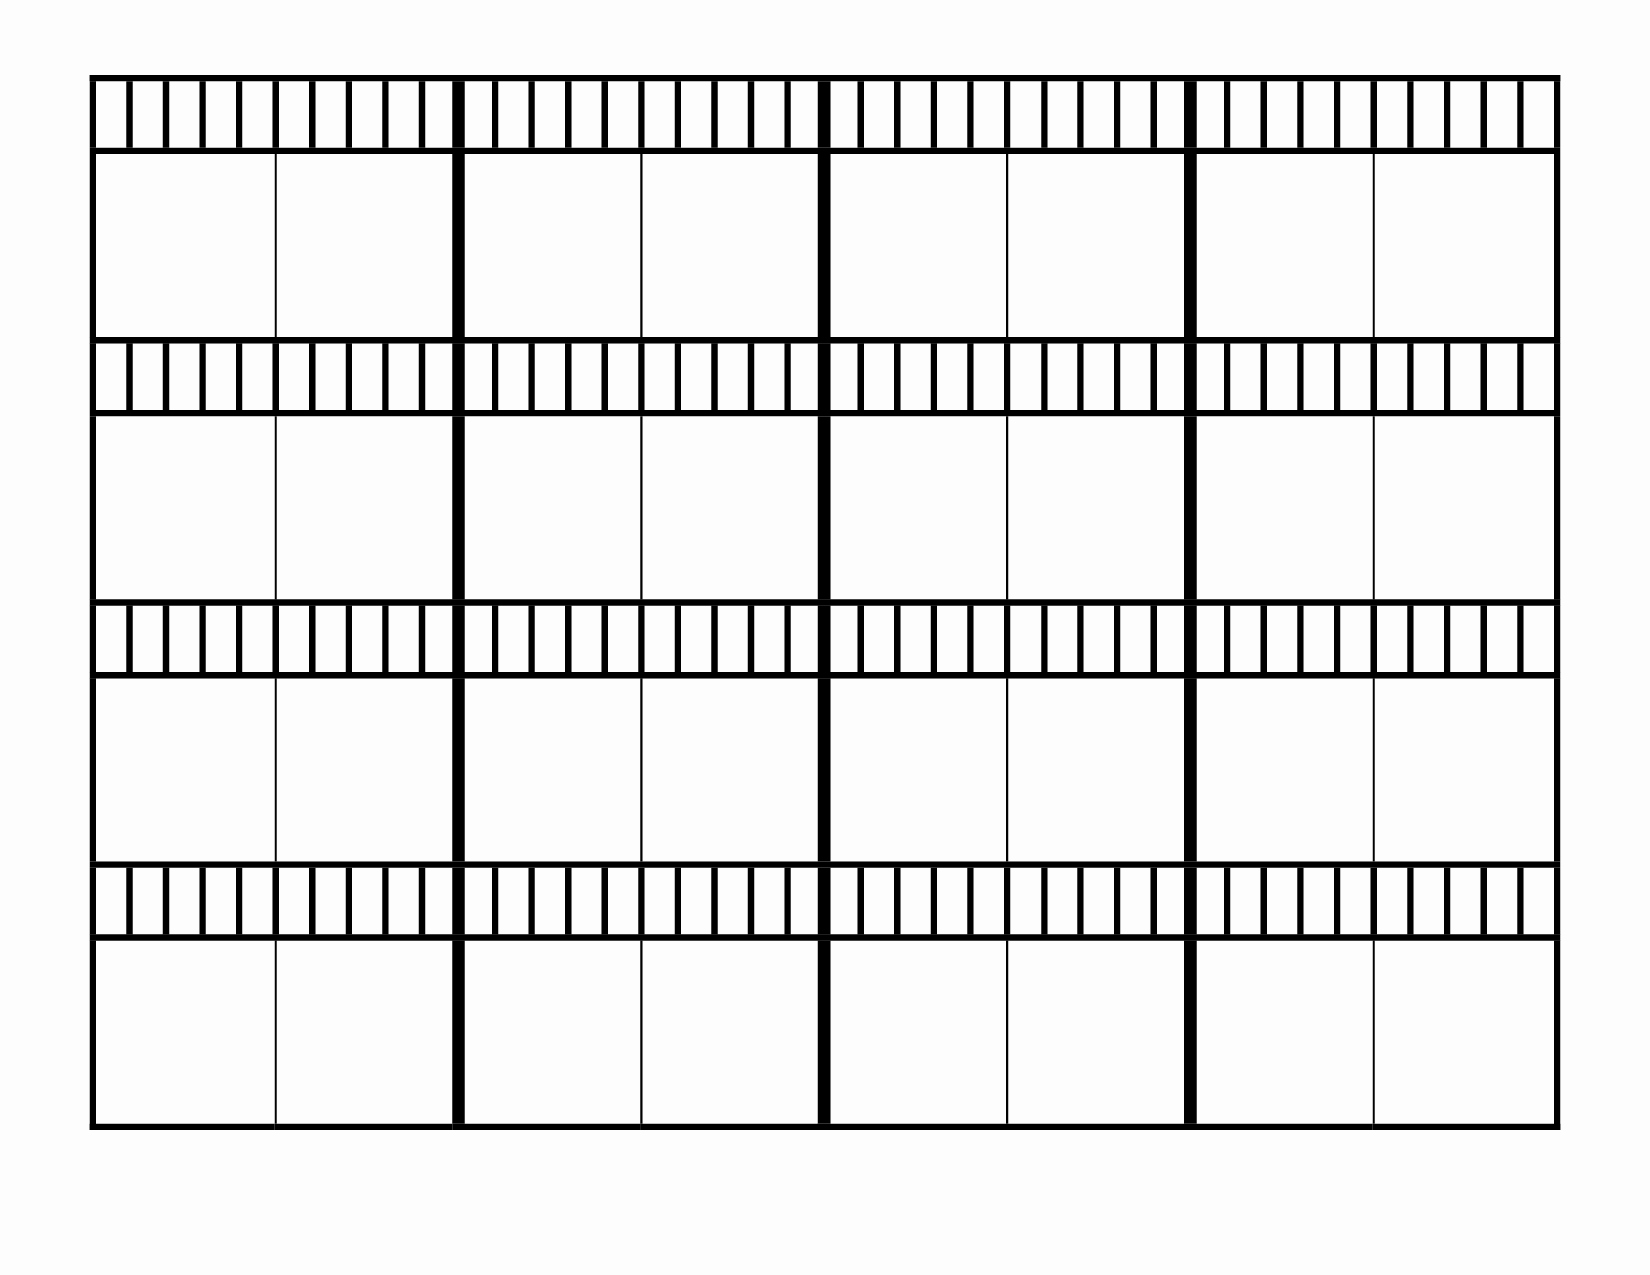 Make Seating Chart Online Free New Classroom Seating Chart Template